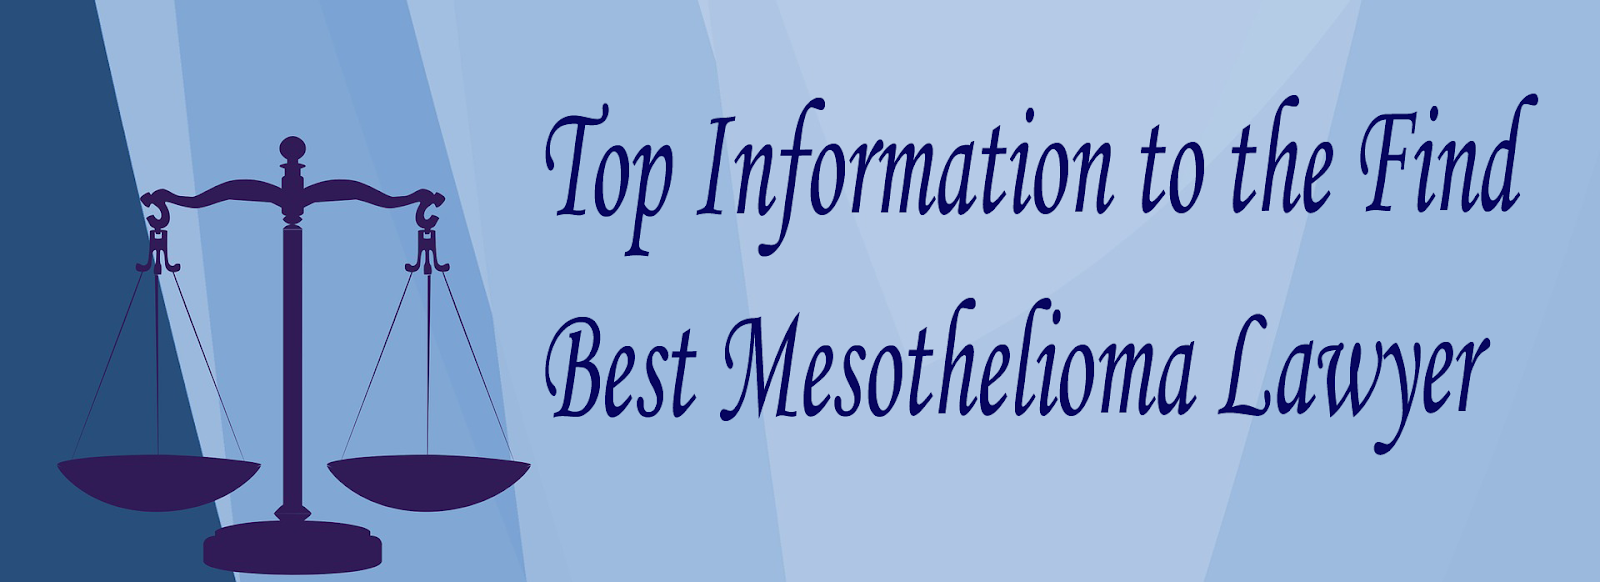 Top Information To The Find Best Mesothelioma Lawyer Funny Jokes